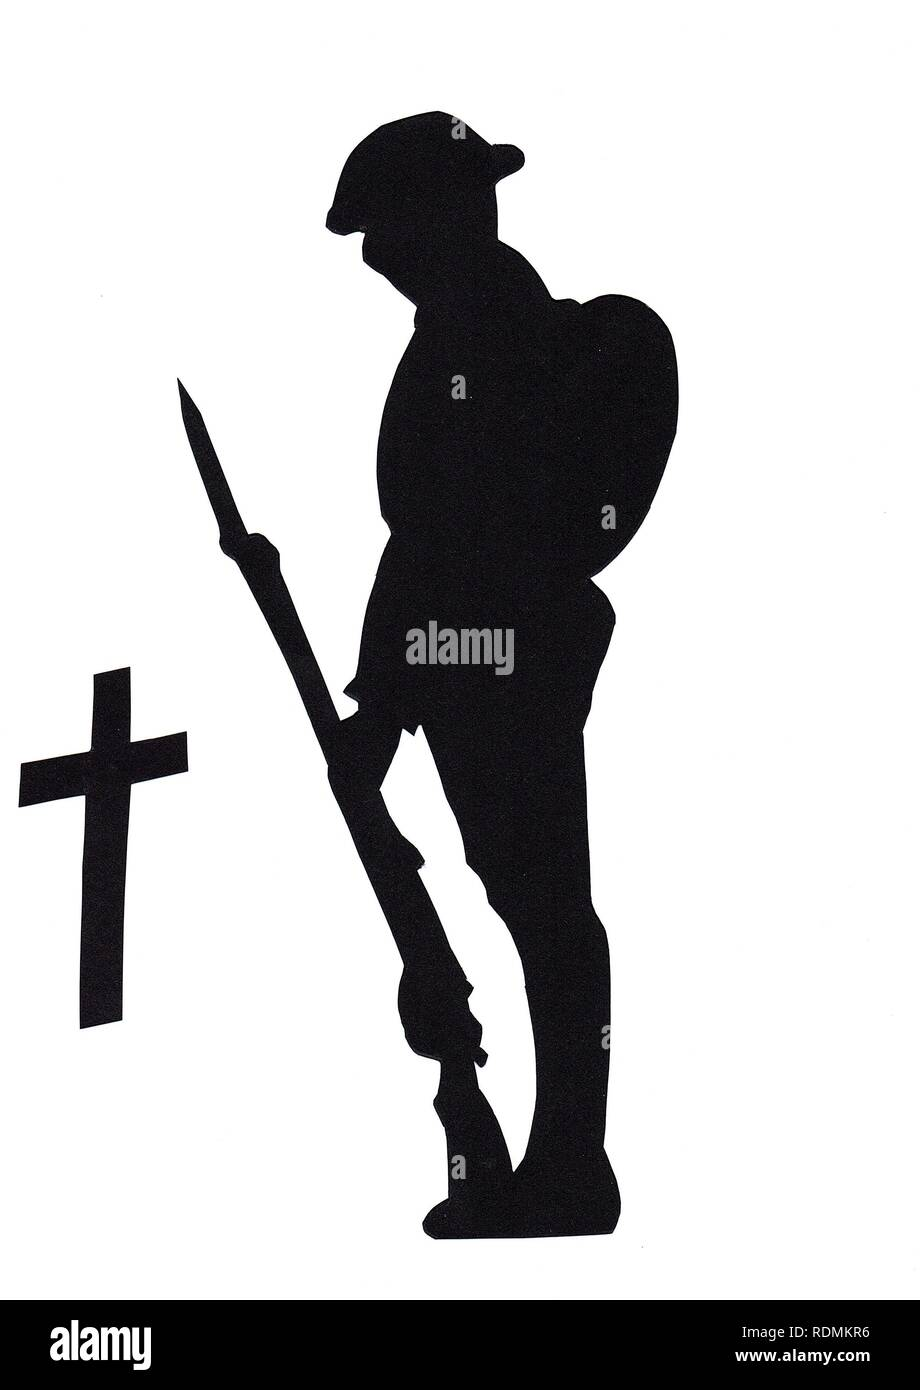 WW1 Soldier in Silhouette, British, Commonwealth or American - Stock Image